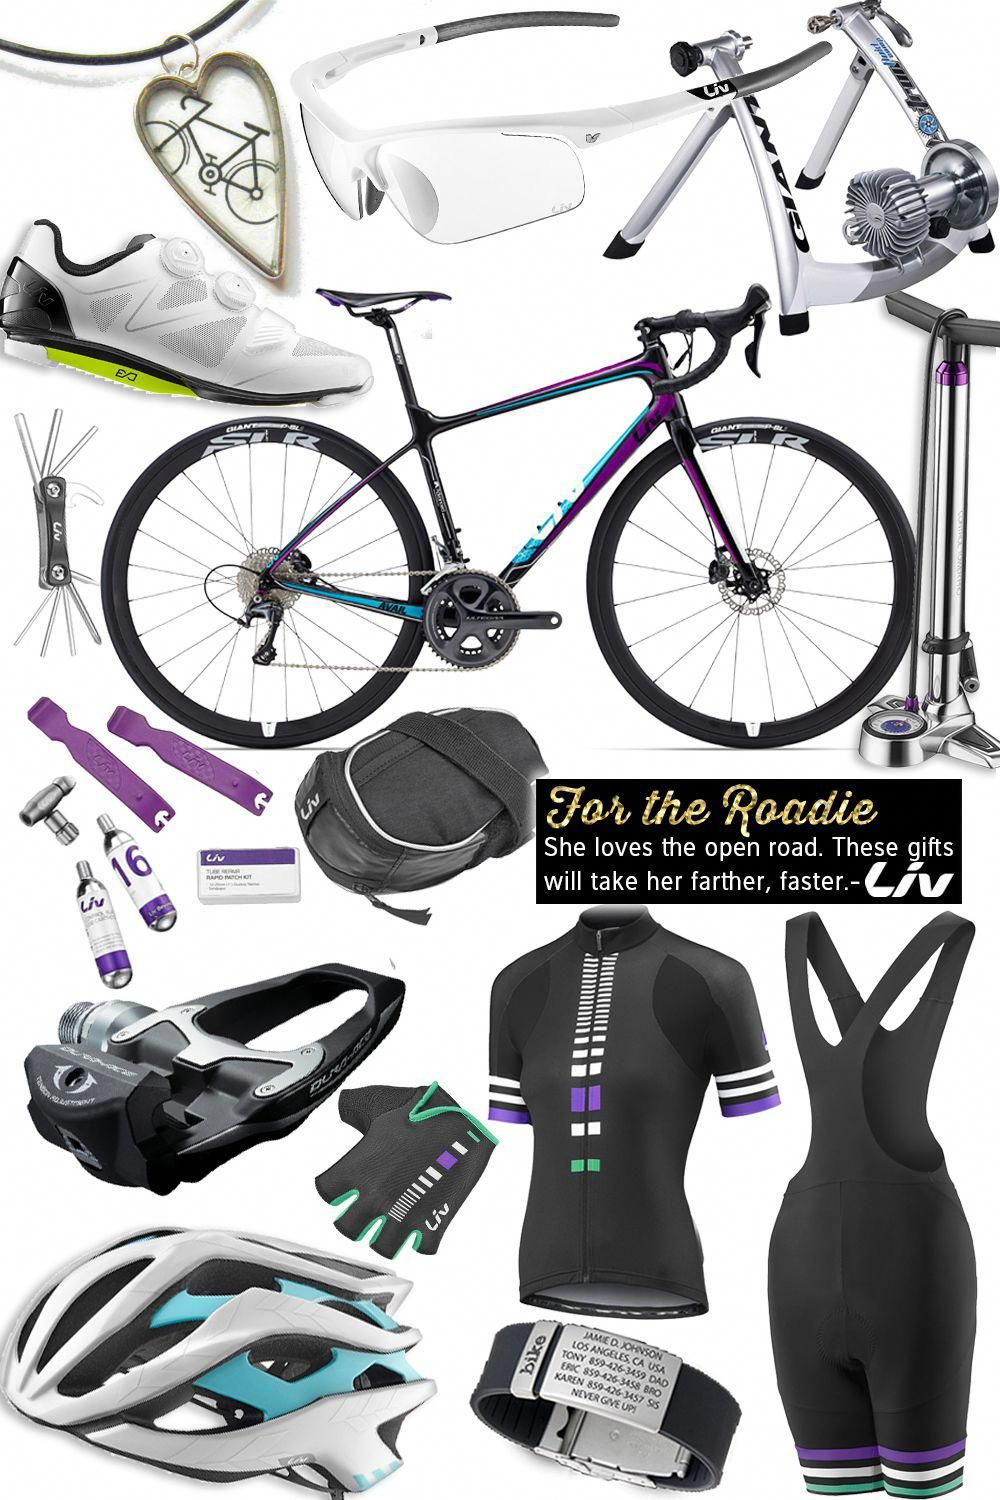 Holiday Gift Guide for Cyclists | Bike Gifts | Gifts for Road Cyclists | Liv-Cycling #roadbikequotes